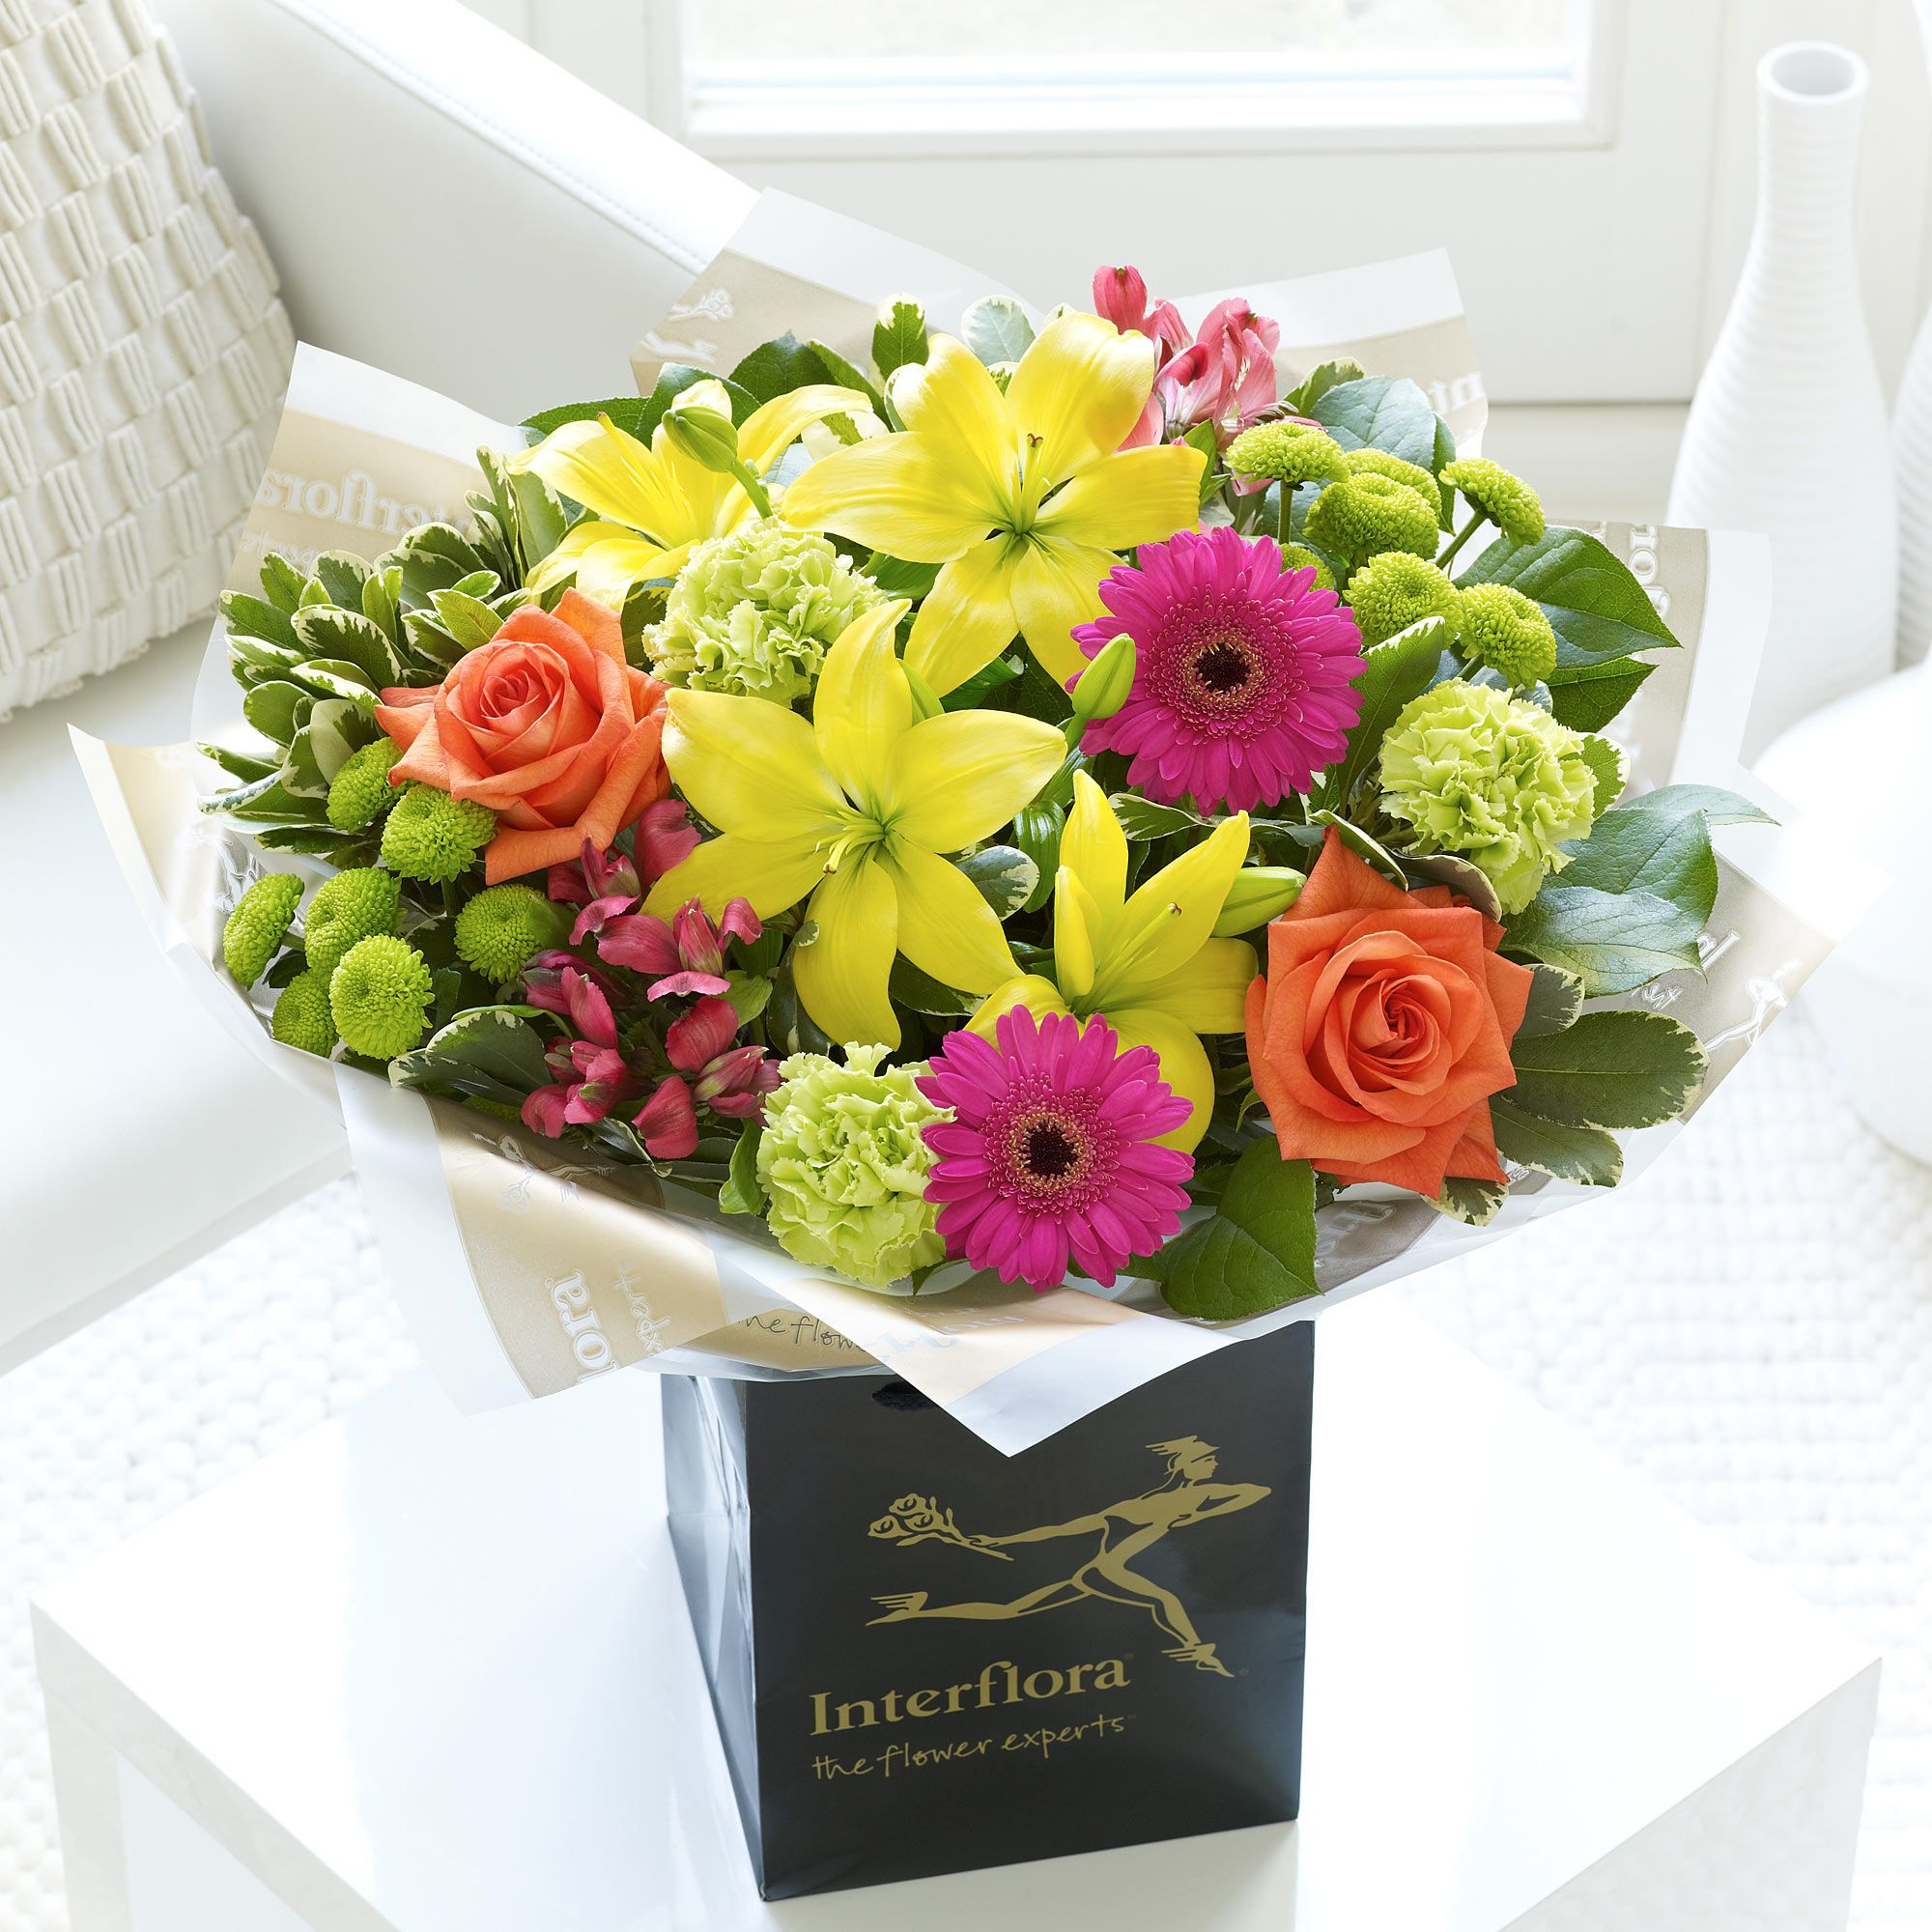 Our vibrant handtied is bursting with colour from orange roses to